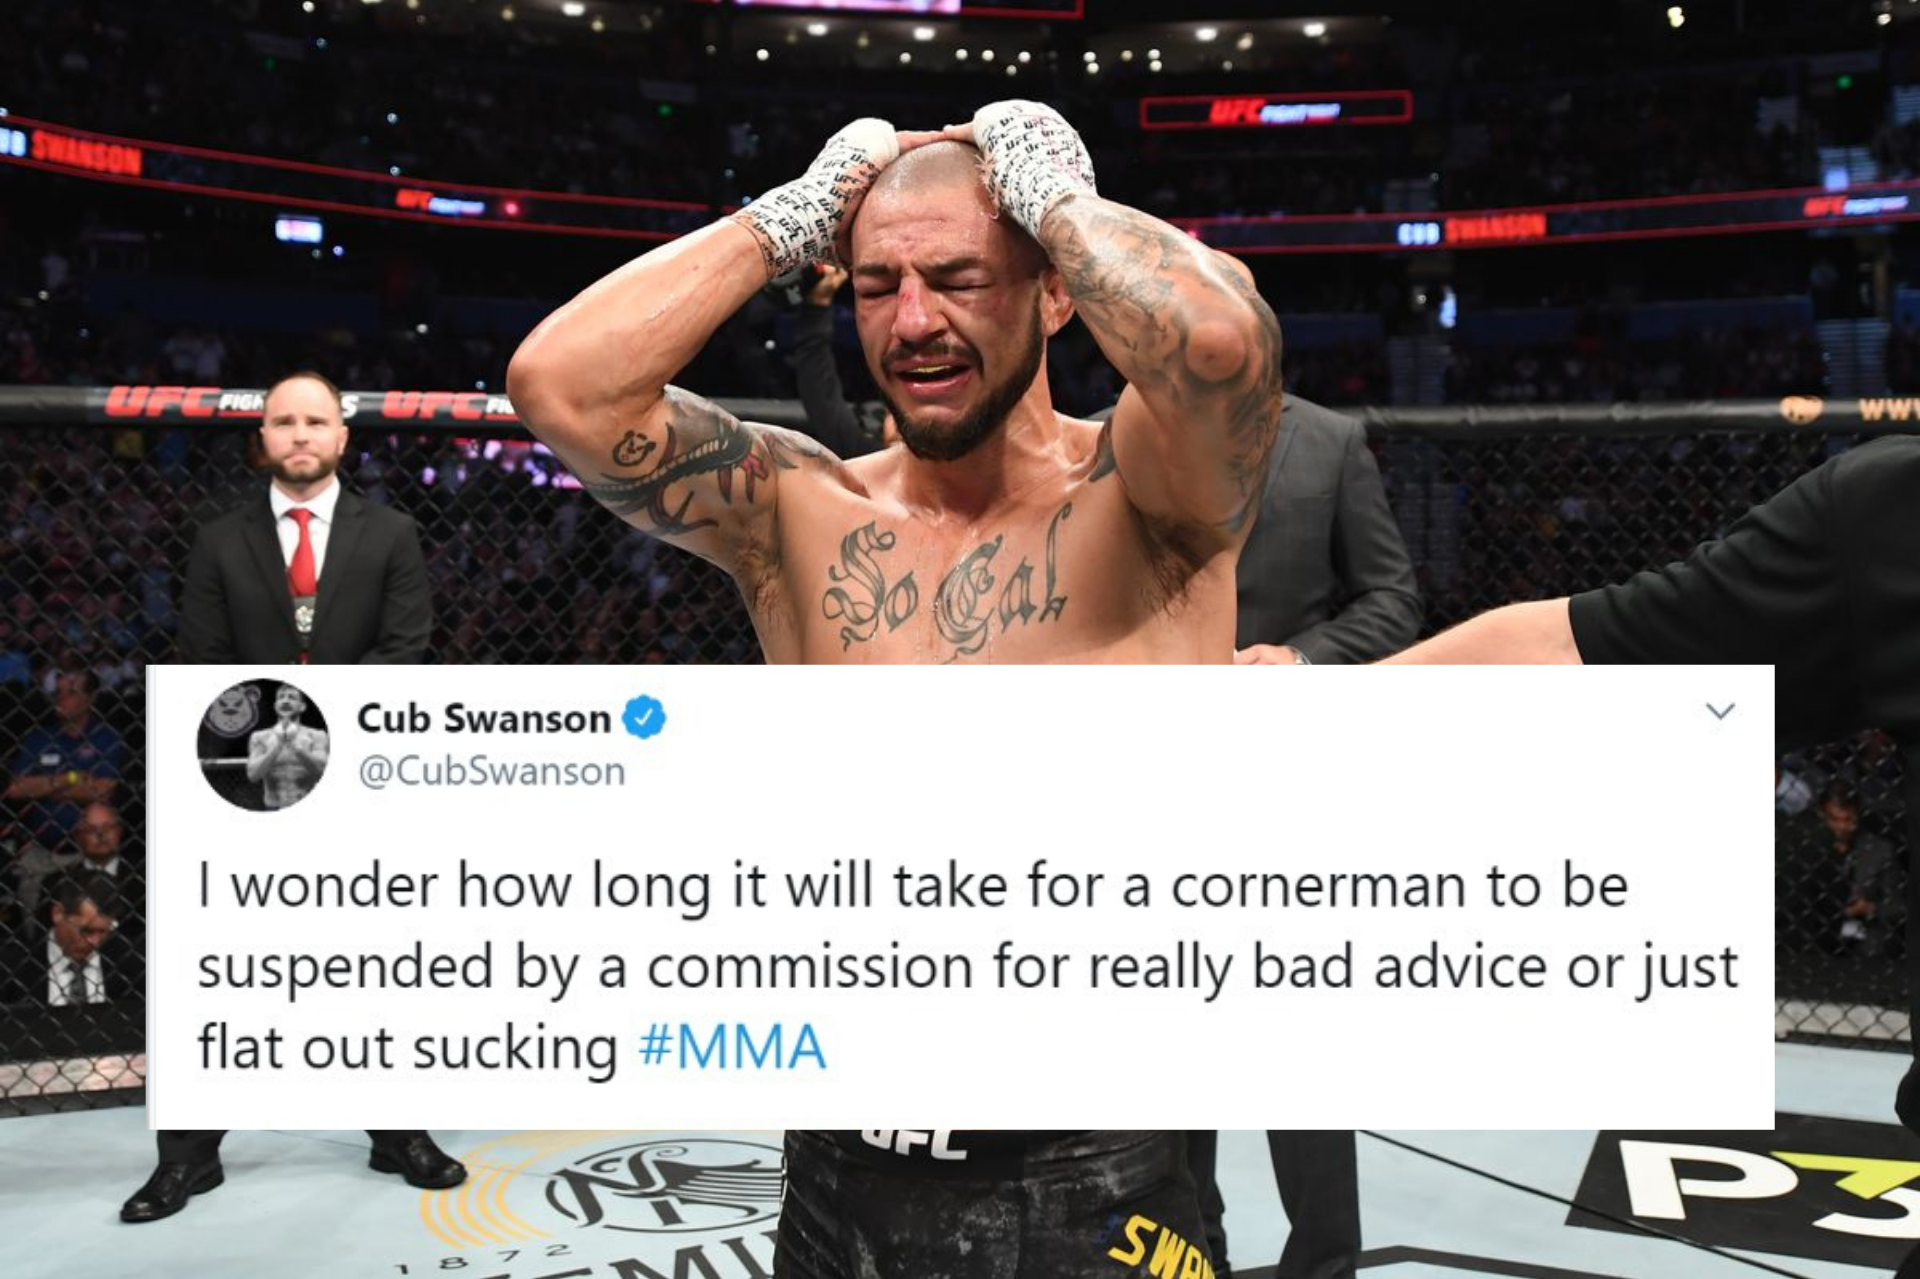 UFC News: Cub Swanson wants cornermen who 'flat out suck at MMA' to be suspended for bad advice in between rounds - Cub